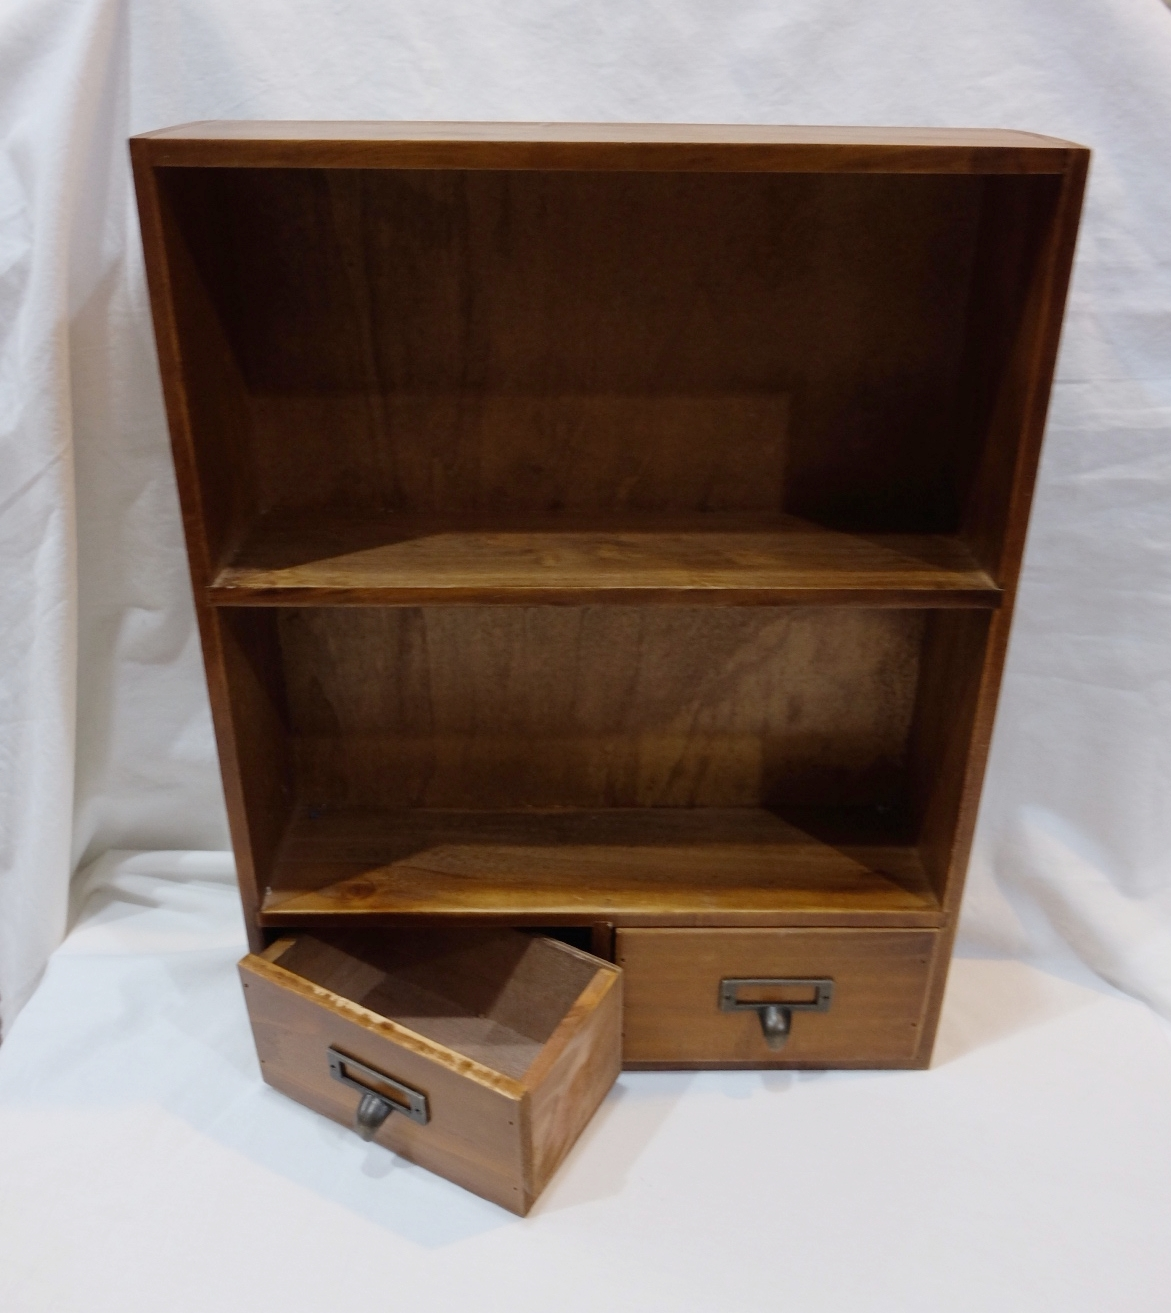 DOUBLE SHELF WITH DRAWER S$12.00